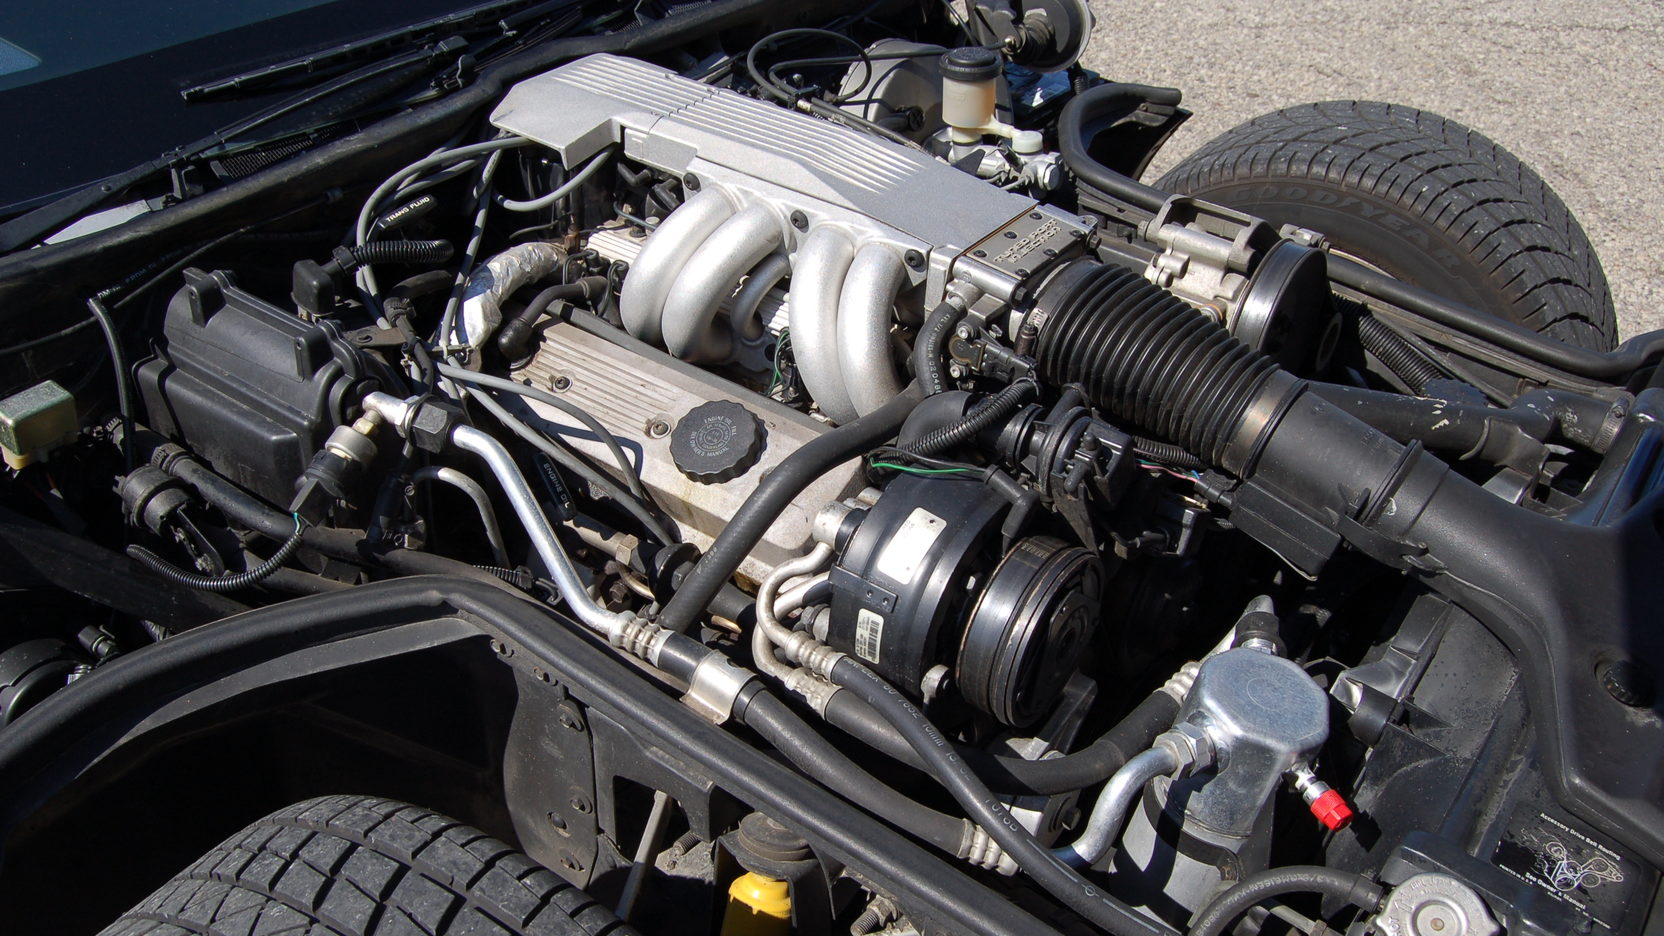 1987 Chevrolet Corvette engine